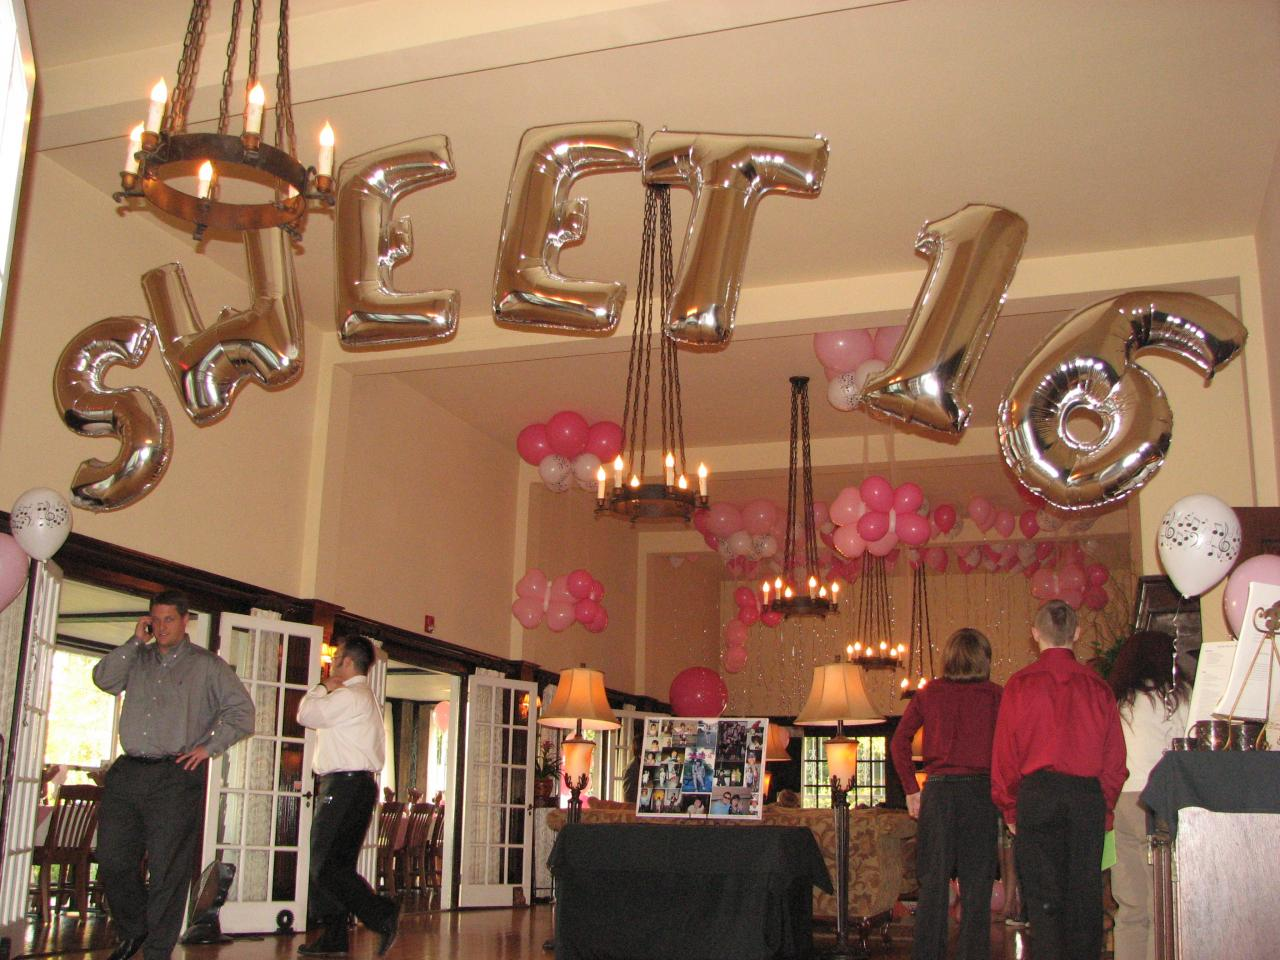 Bouquets balloons portland balloons wedding balloons for 16 birthday decoration ideas